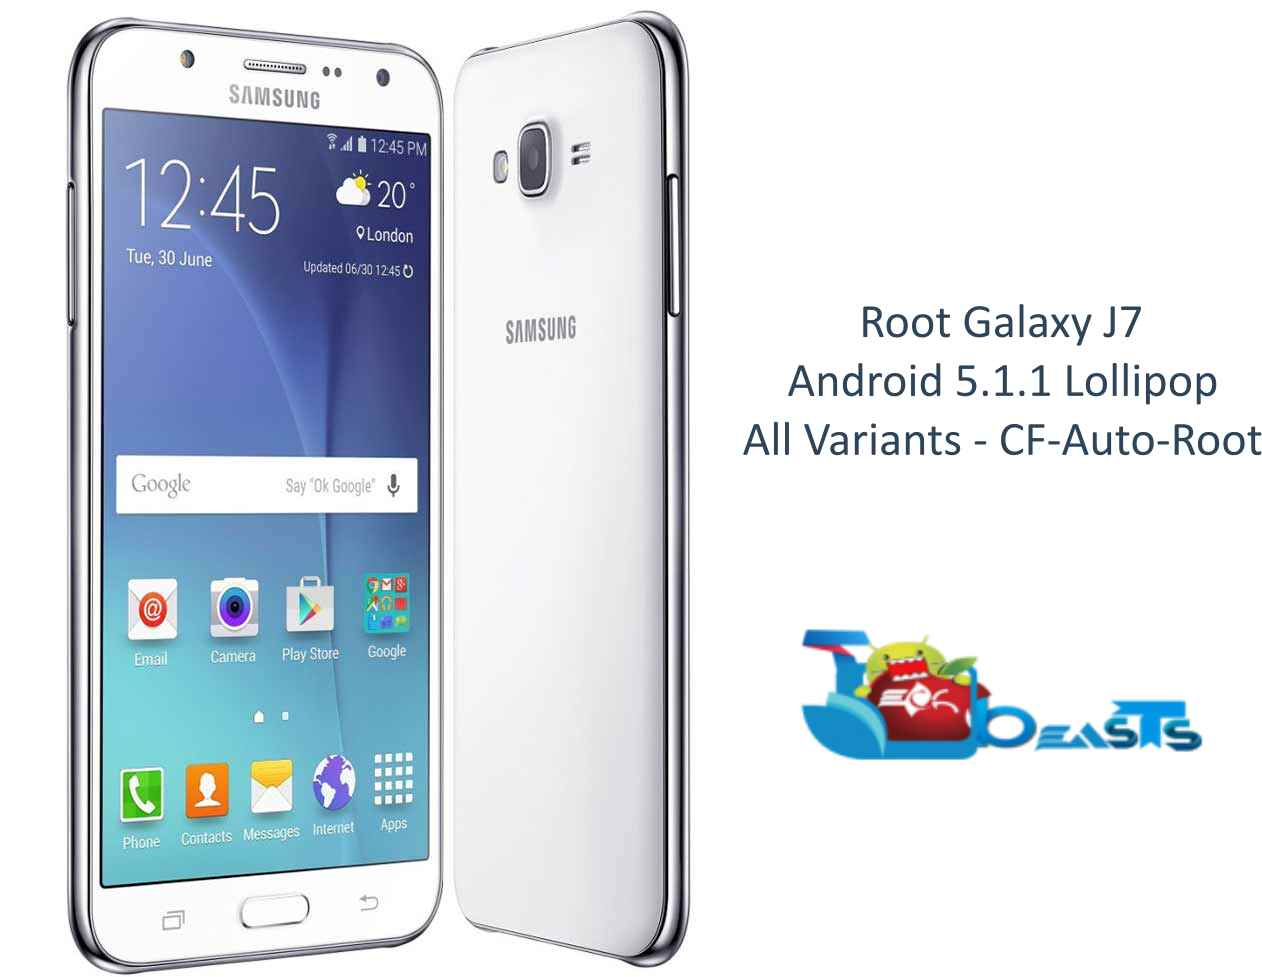 How To Root Samsung Galaxy J7 on Android 5 1 1 Lollipop